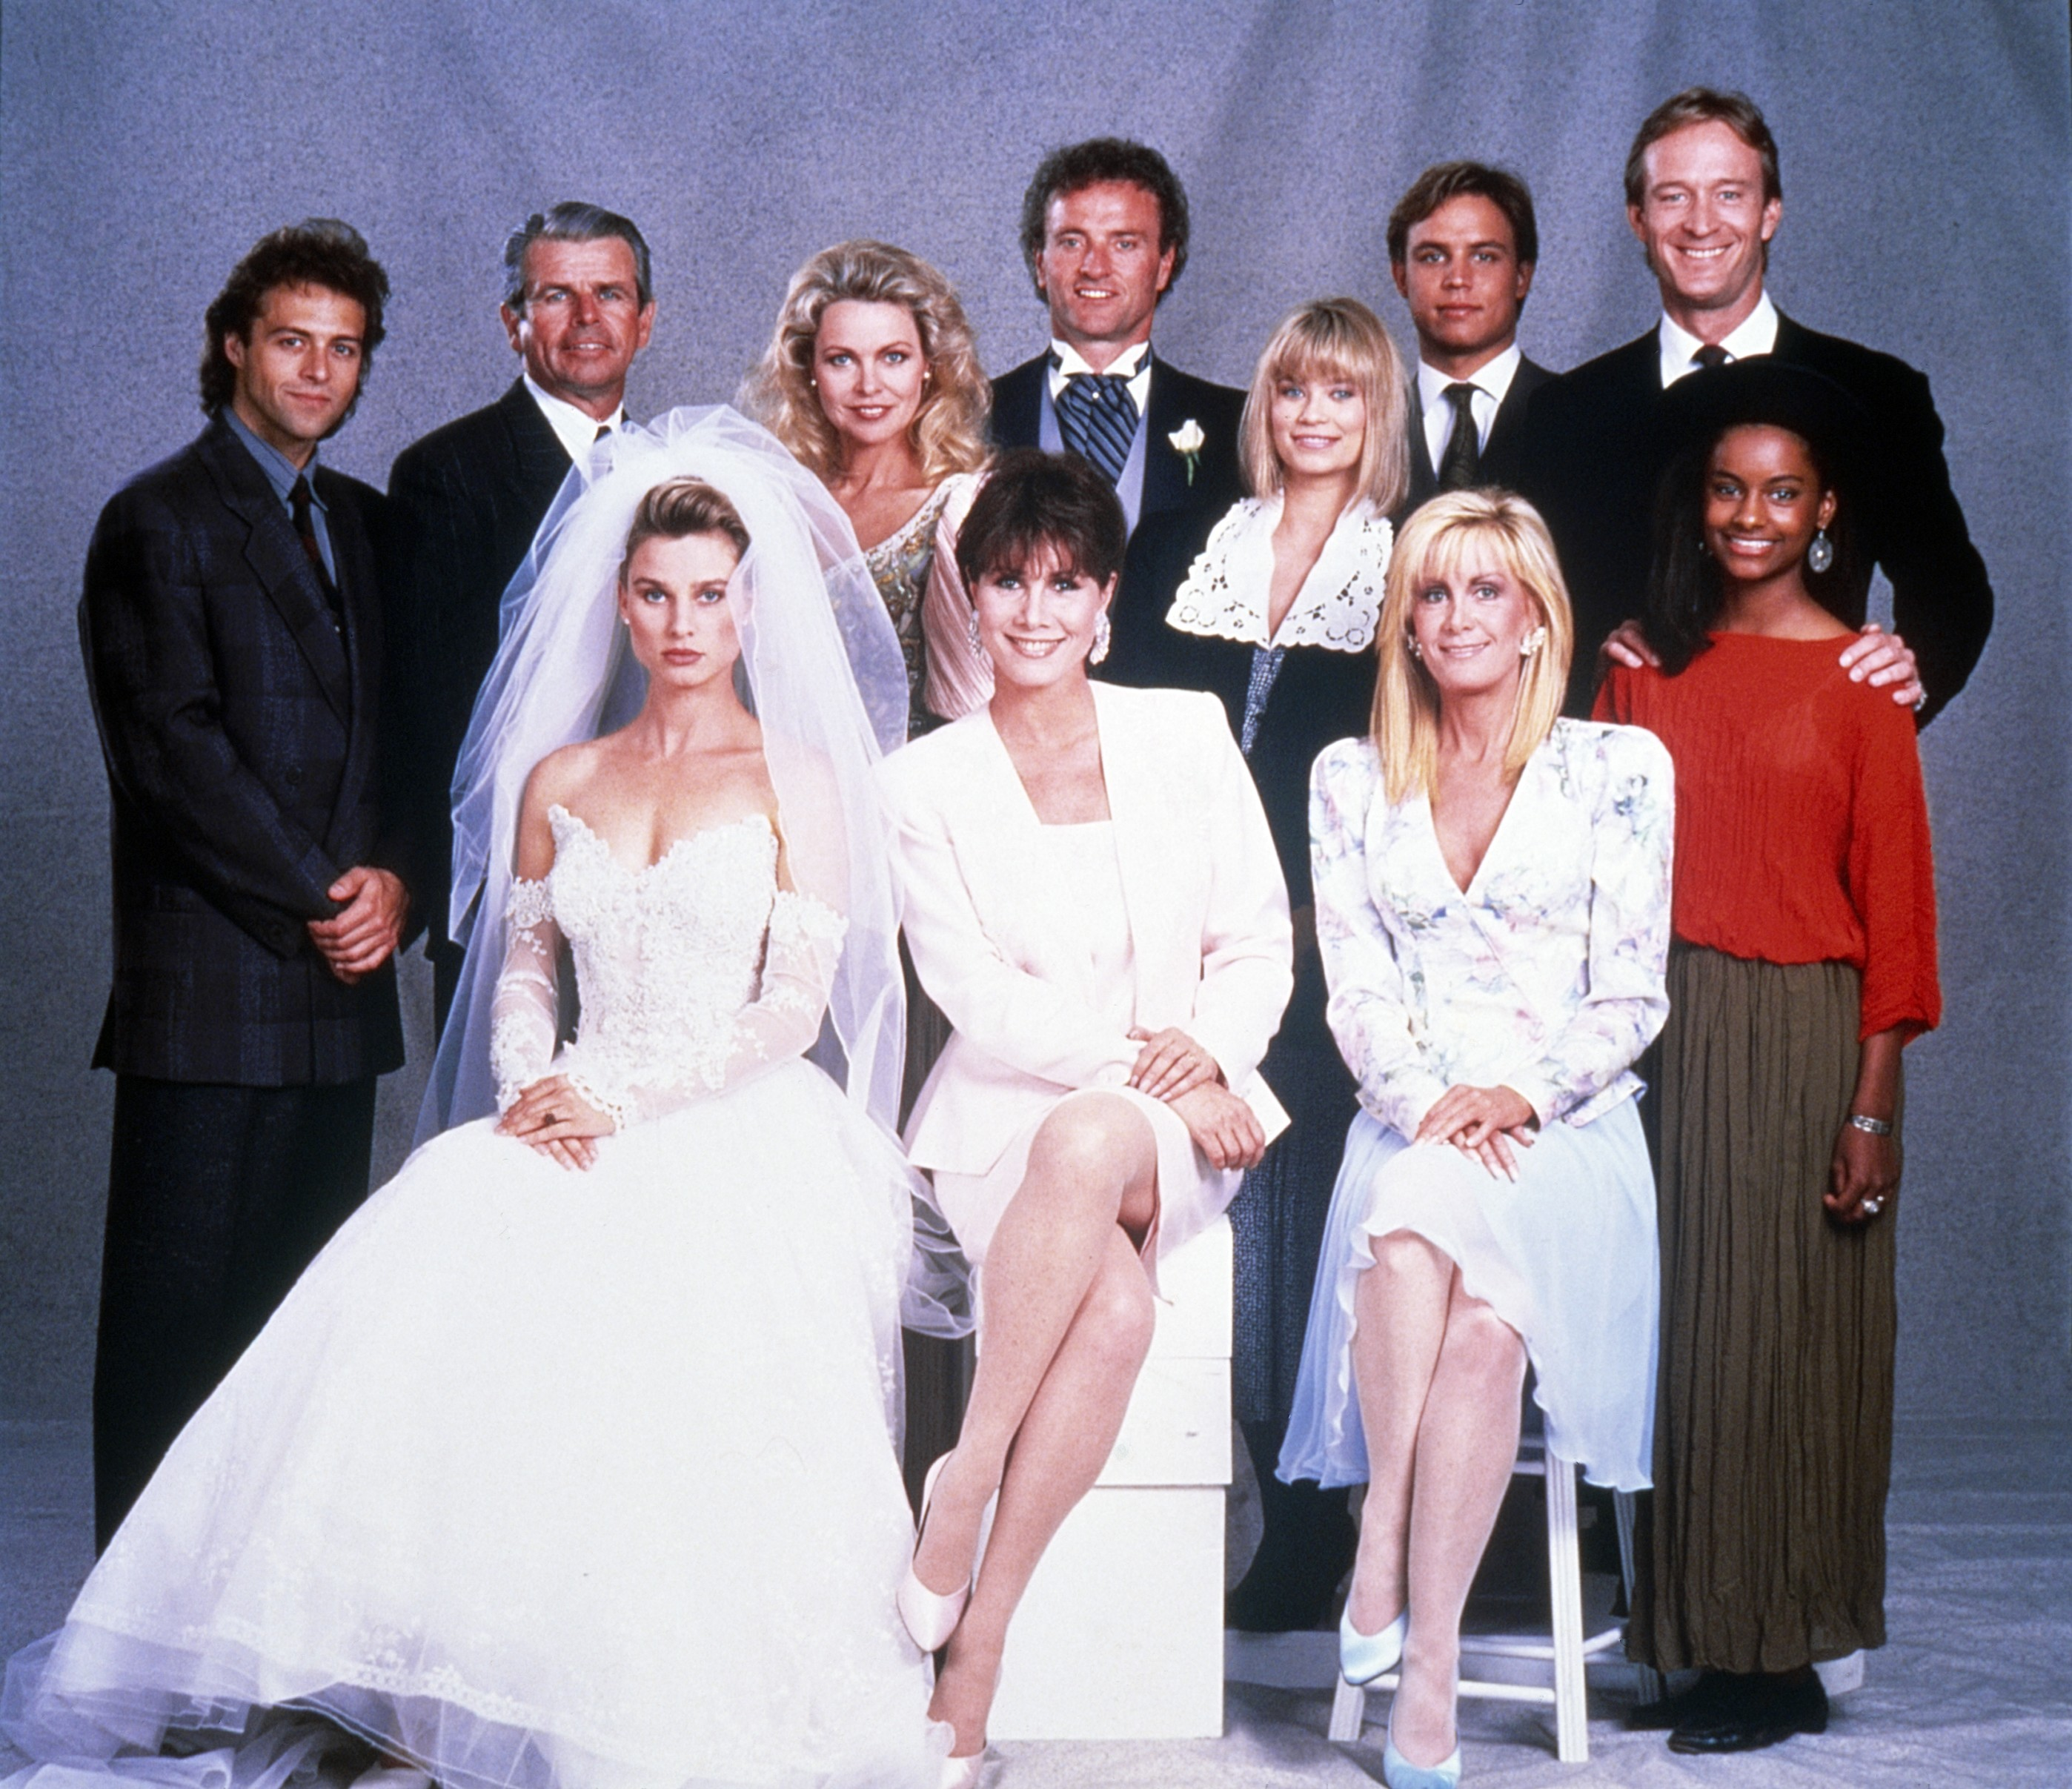 KNOTS LANDING, standing, from left: Joseph Gian, William Devane, Michelle Phillips, Kevin Dobson, Lar Park Lincoln, Pat Petersen, Ted Shackelford, Kent Masters King (red), sitting, from left: Nicollette Sheridan, Michele Lee, Joan Van Ark, 1979-1993. © CBS /Courtesy Everett Collection